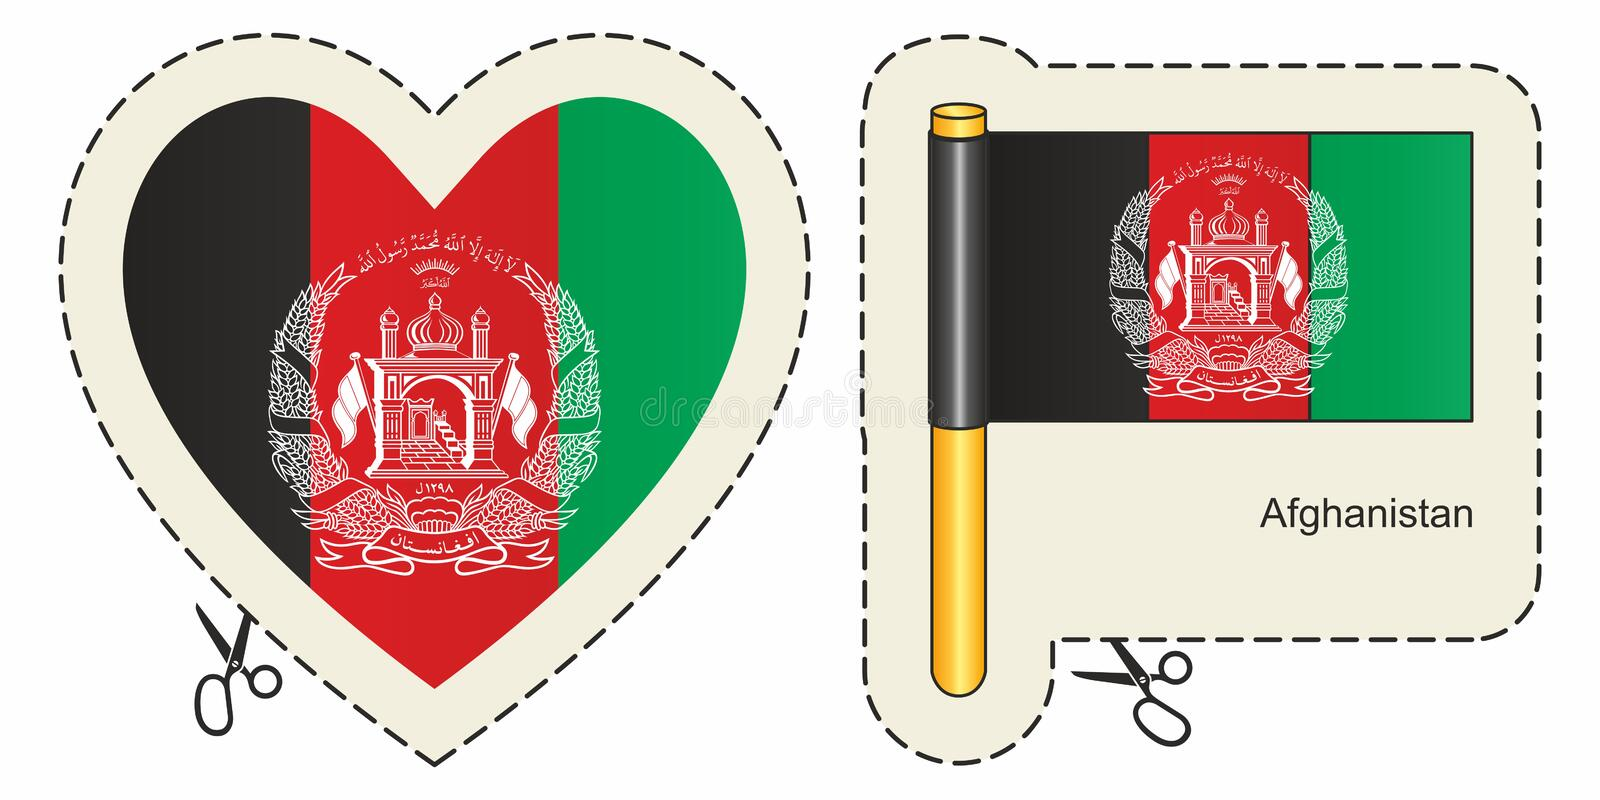 Flag of Afghanistan. Vector cut sign here, isolated on white. Can be used for design, stickers, souvenirs. vector illustration